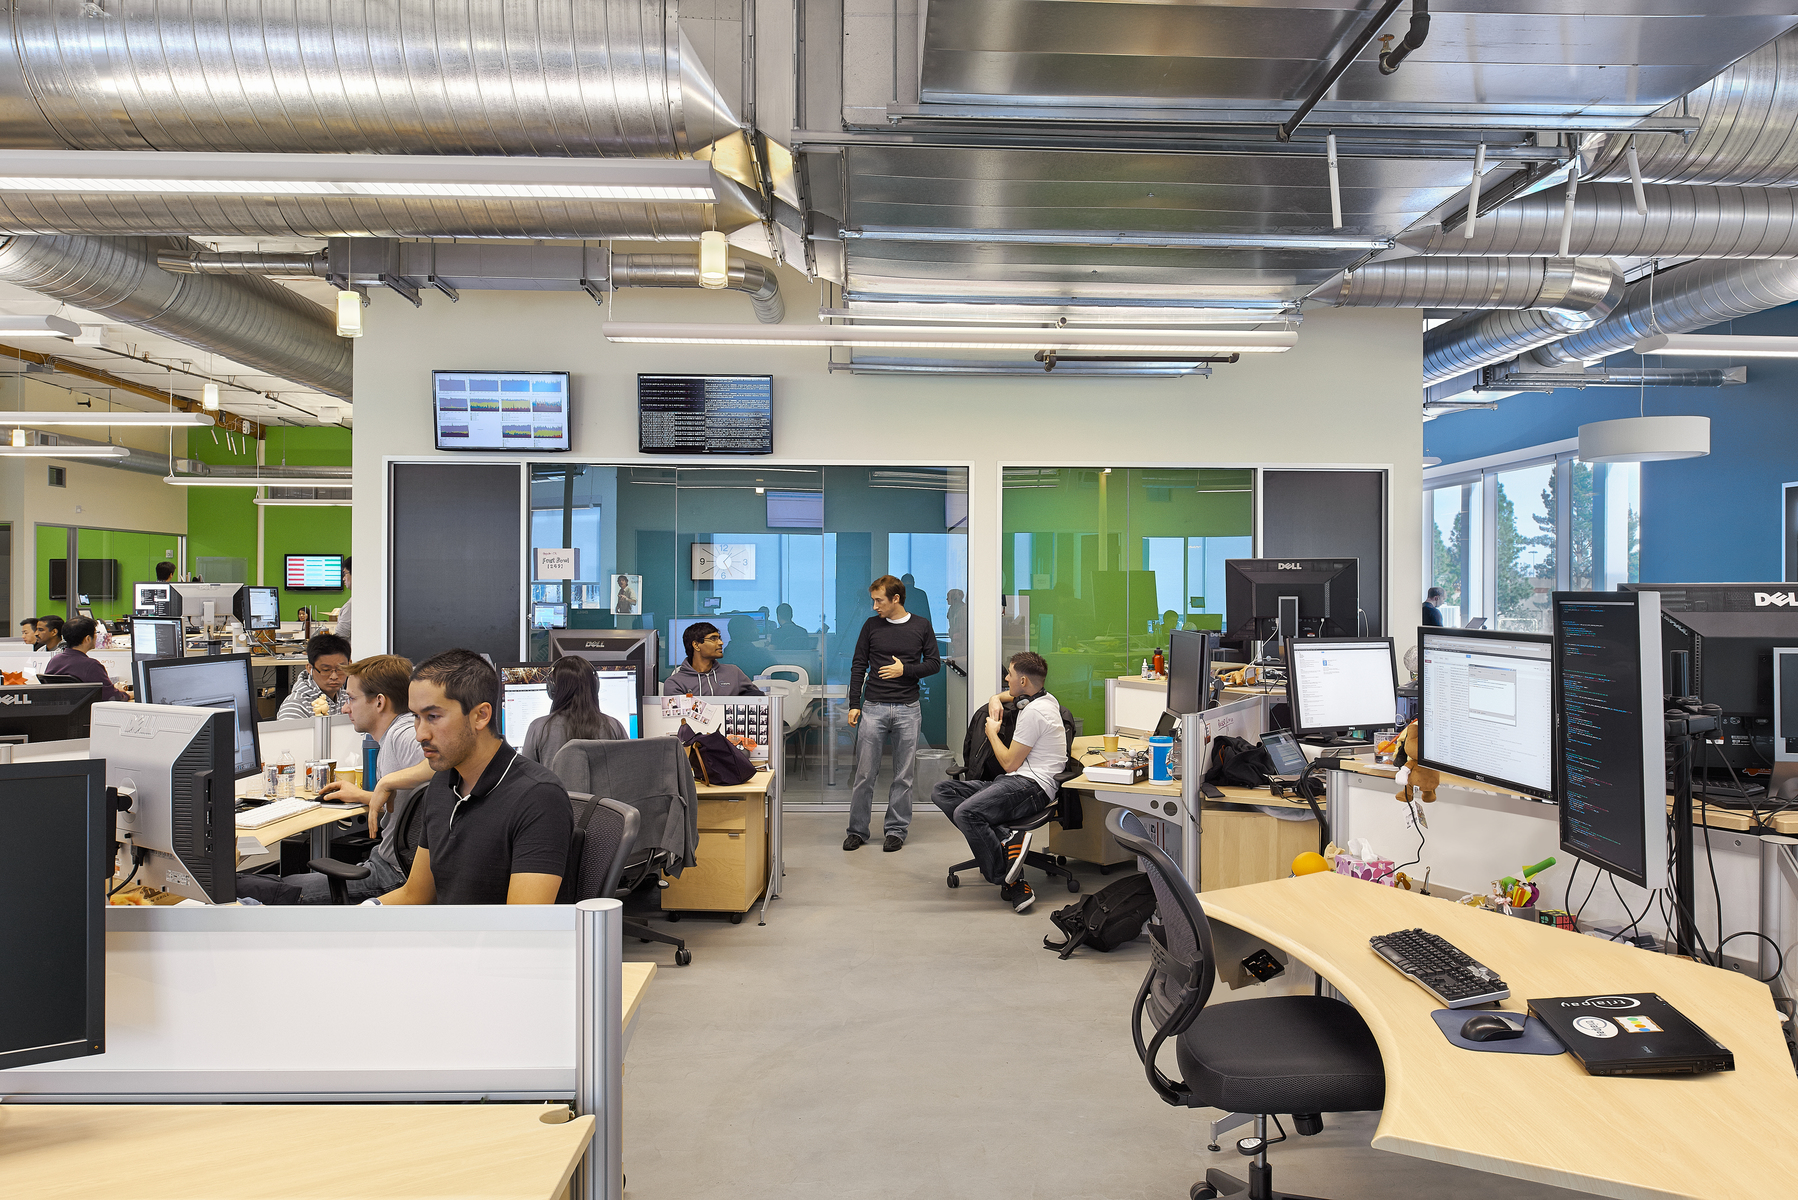 Conference Rooms and Open Office Work Stations